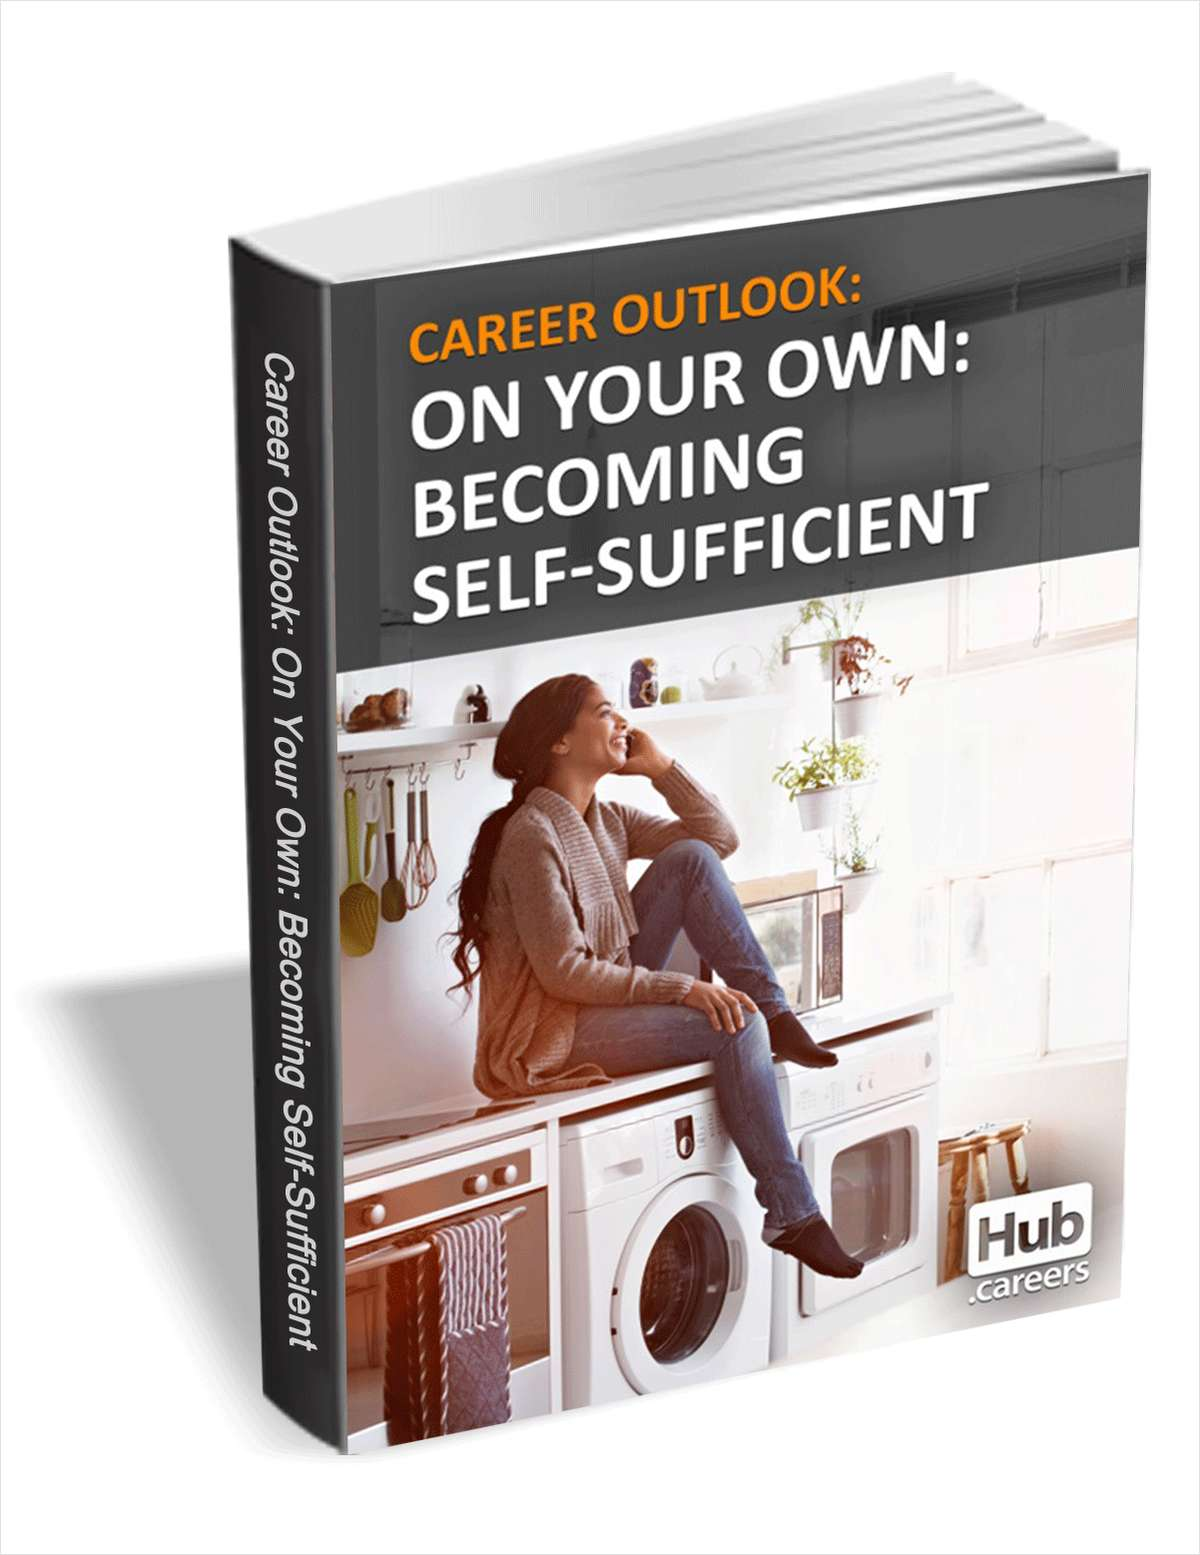 On Your Own: Becoming Self-Sufficient - Career Outlook